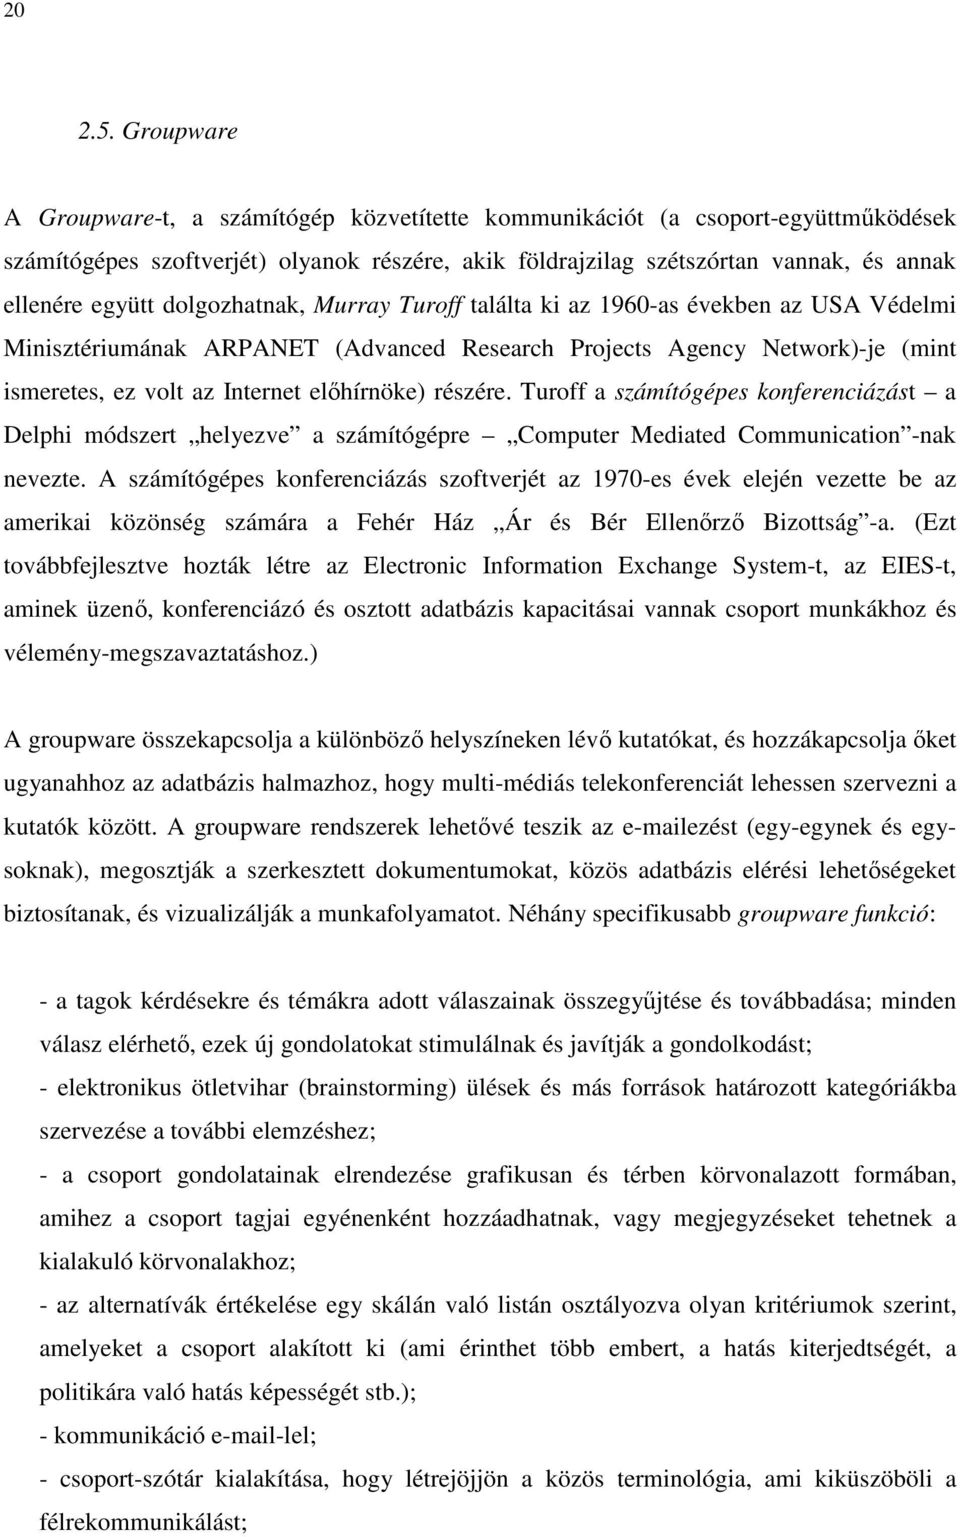 dolgozhatnak, Murray Turoff találta ki az 1960-as években az USA Védelmi Minisztériumának ARPANET (Advanced Research Projects Agency Network)-je (mint ismeretes, ez volt az Internet elıhírnöke)